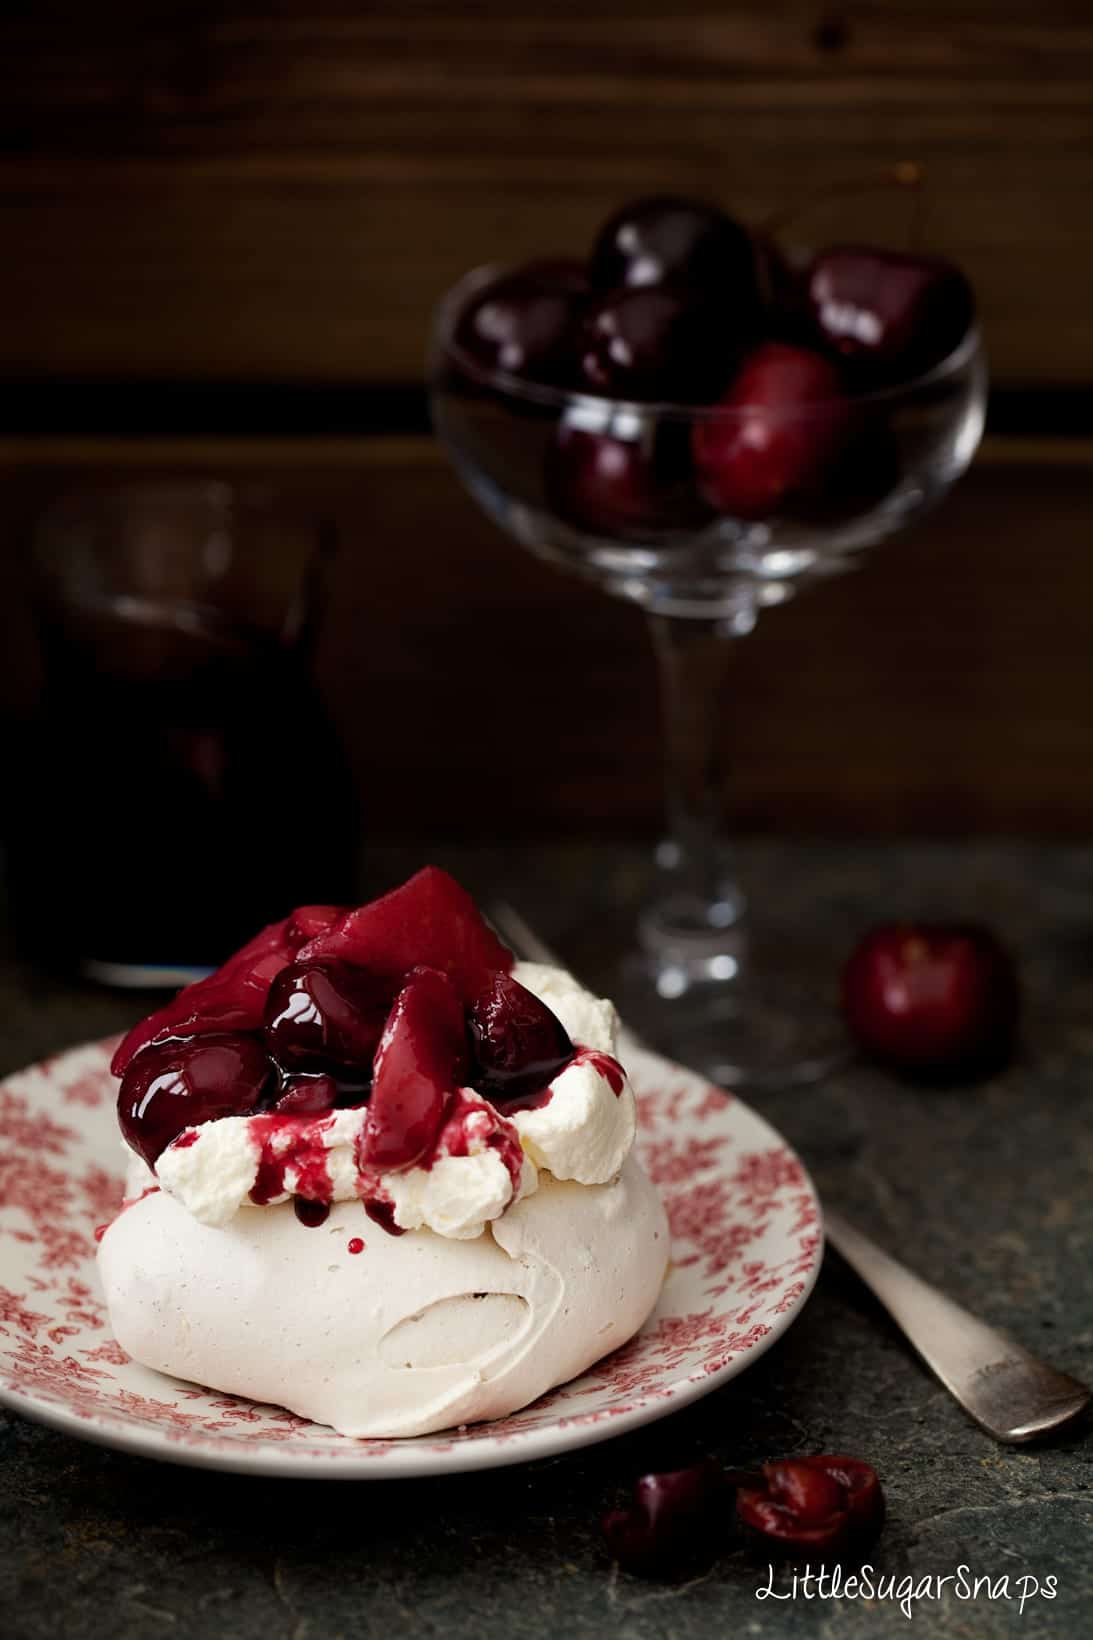 Muscovado Meringue with whipped cream and red wine poached fruit.